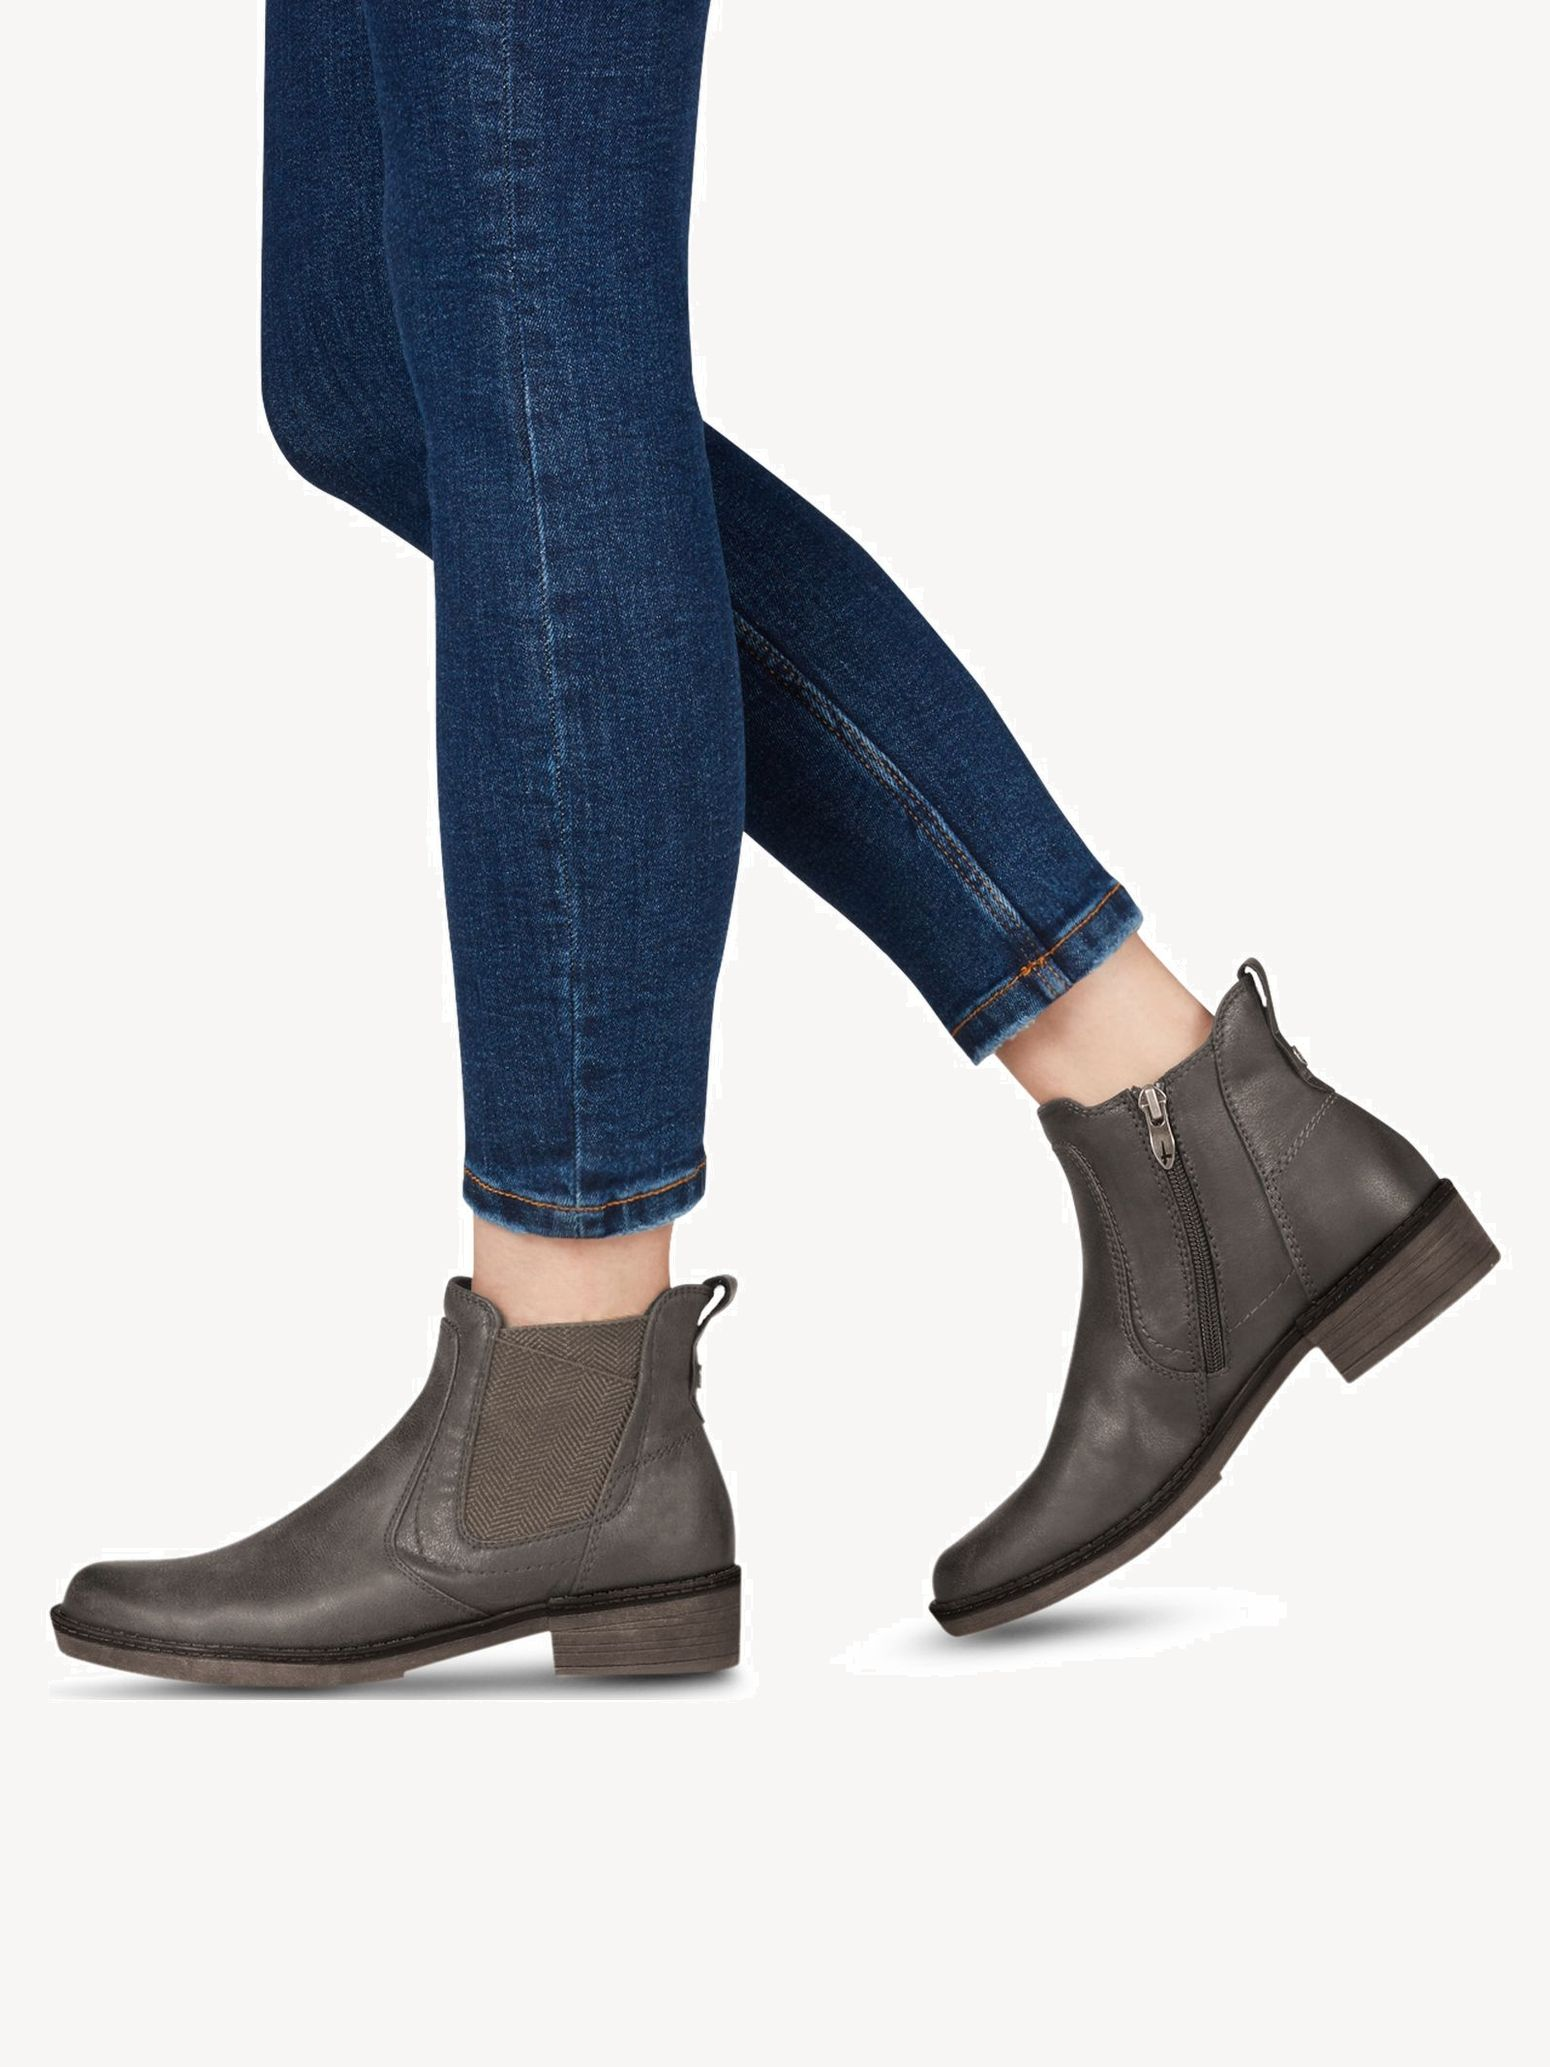 Chelsea Boot - braun, TAUPE, hi-res